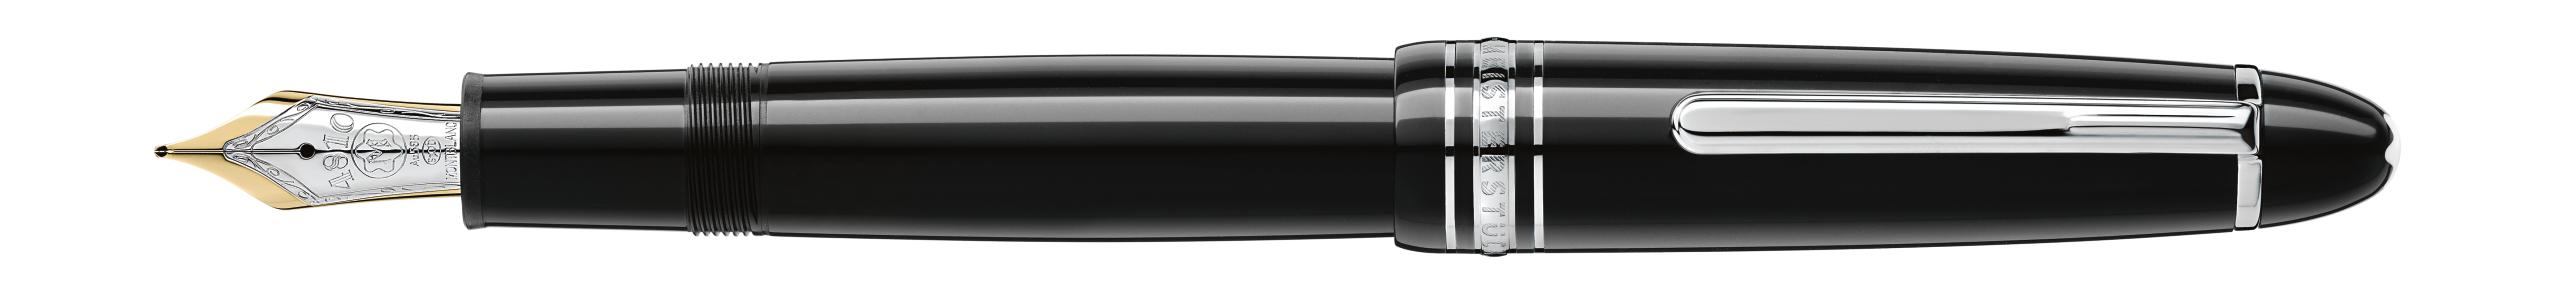 114226 - Platinum-Coated LeGrand Traveller Fountain Pen_1834032